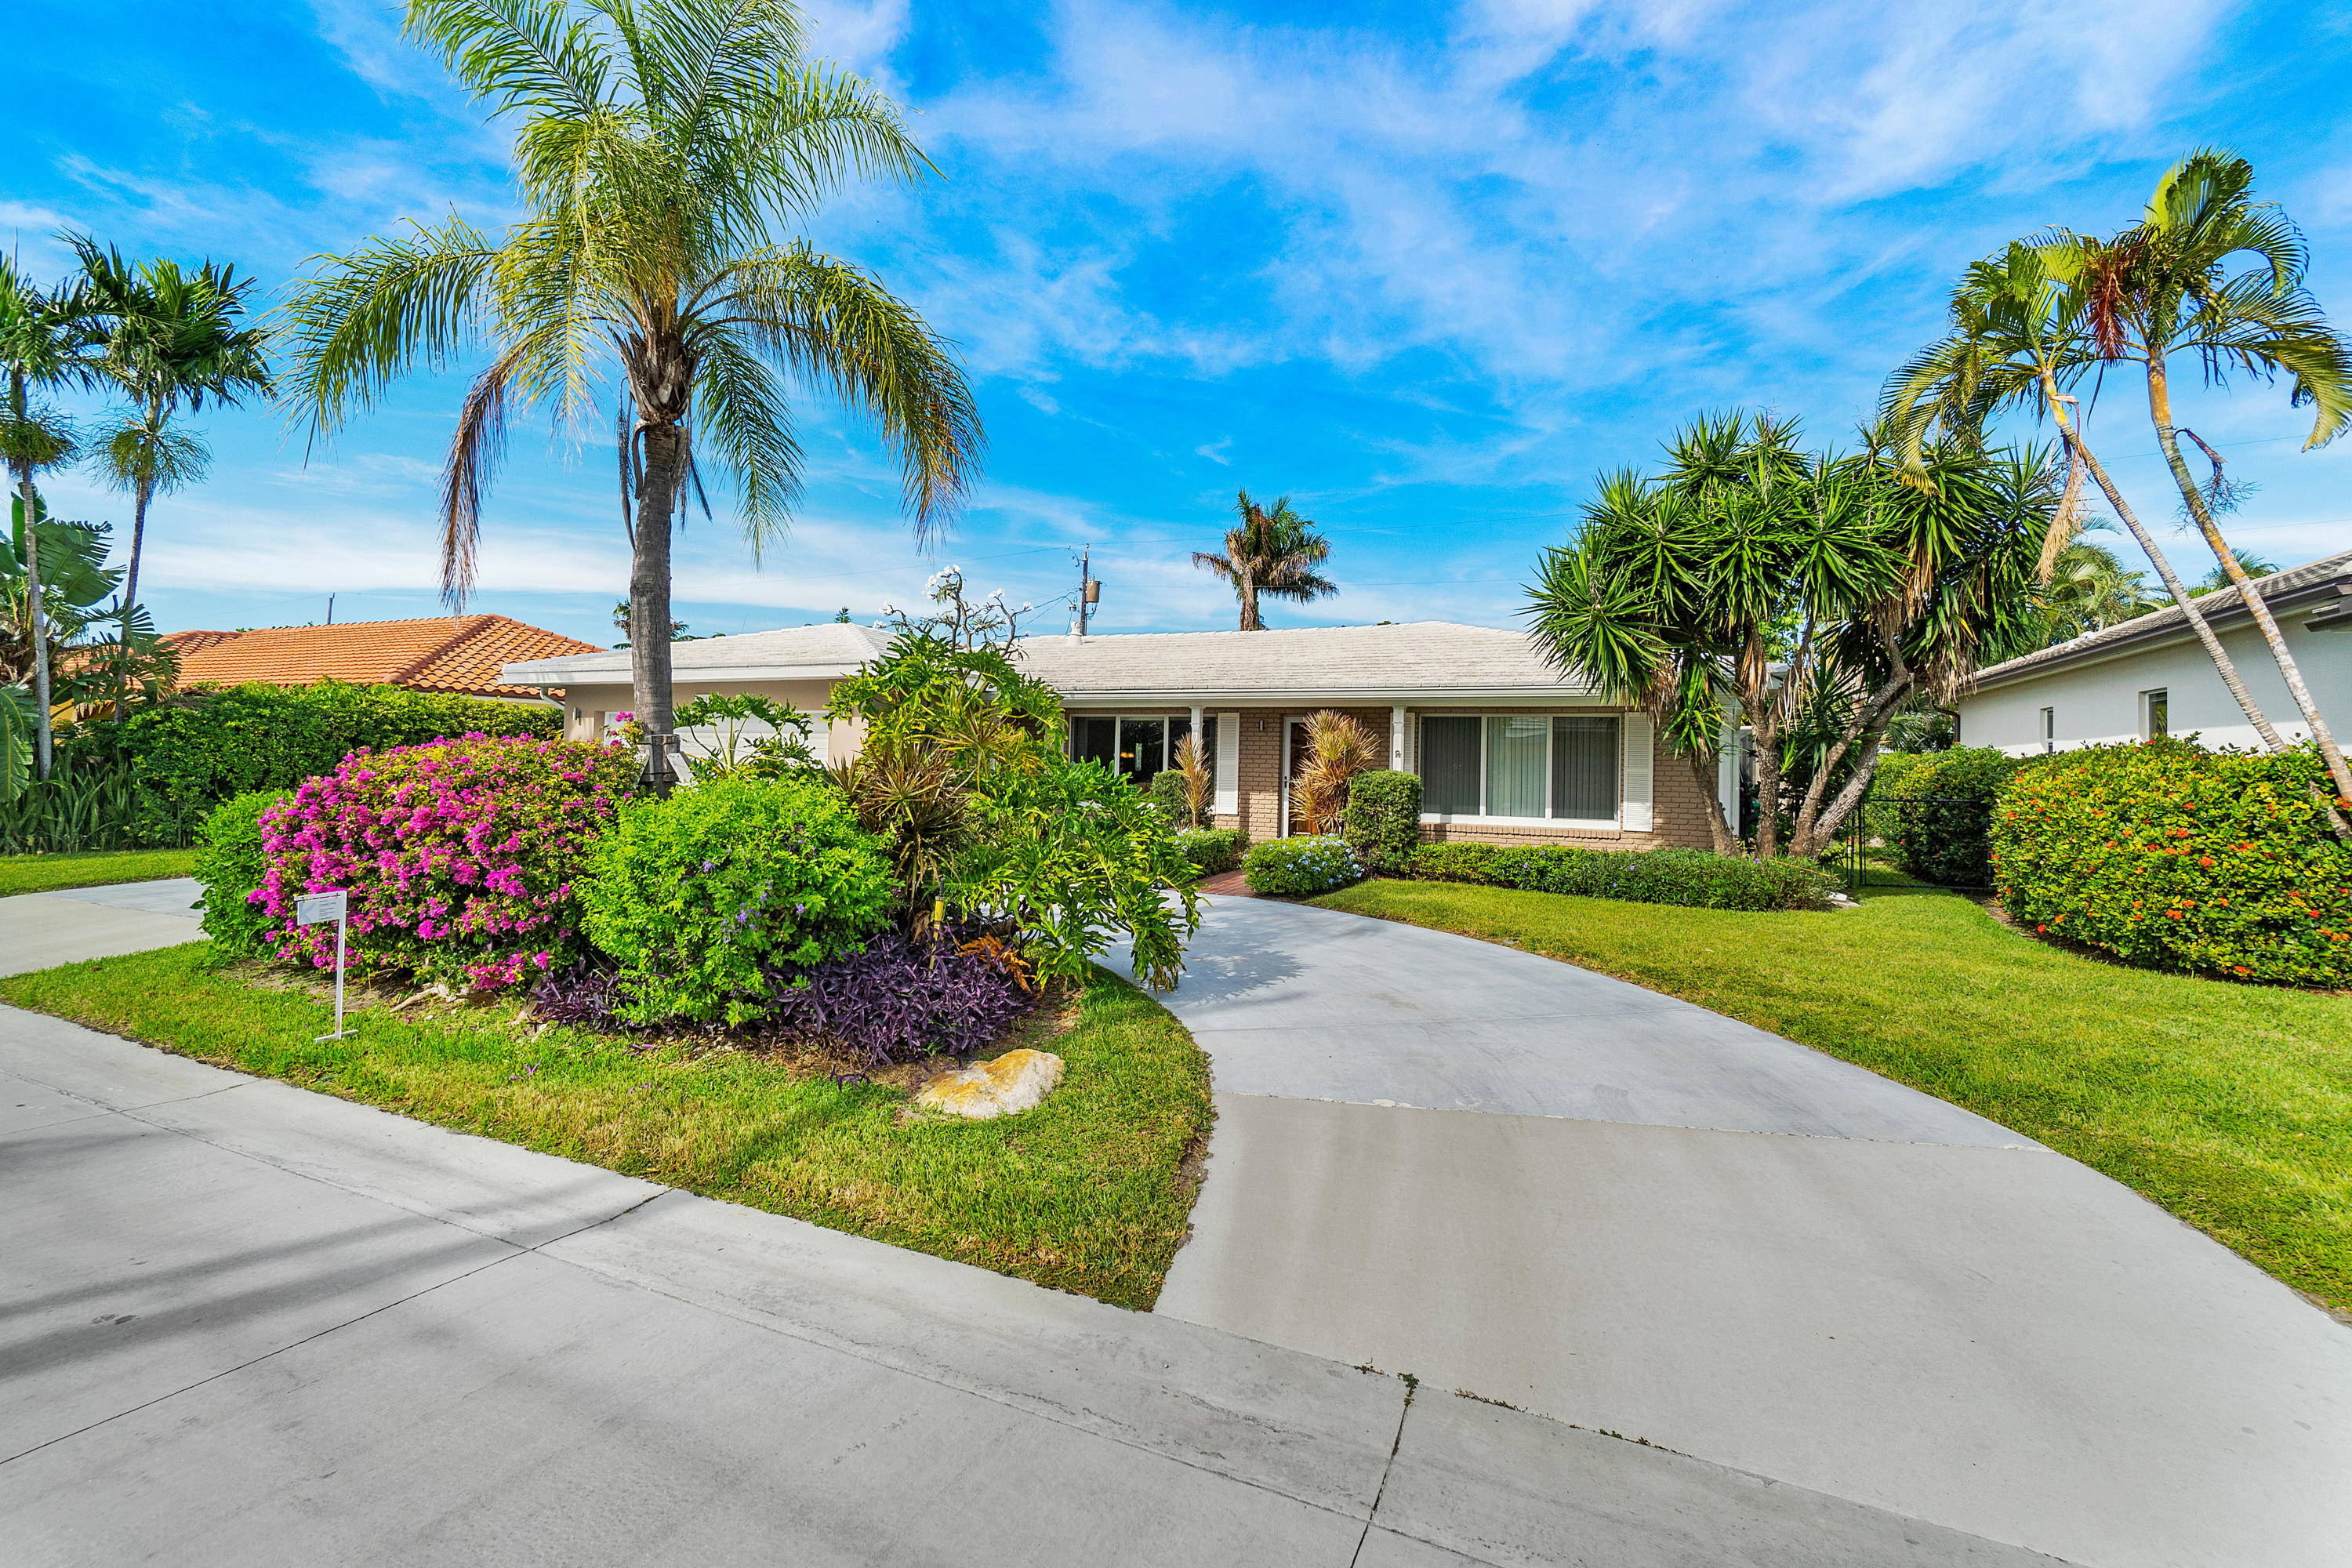 New Home for sale at 1060 Morse Boulevard in Singer Island